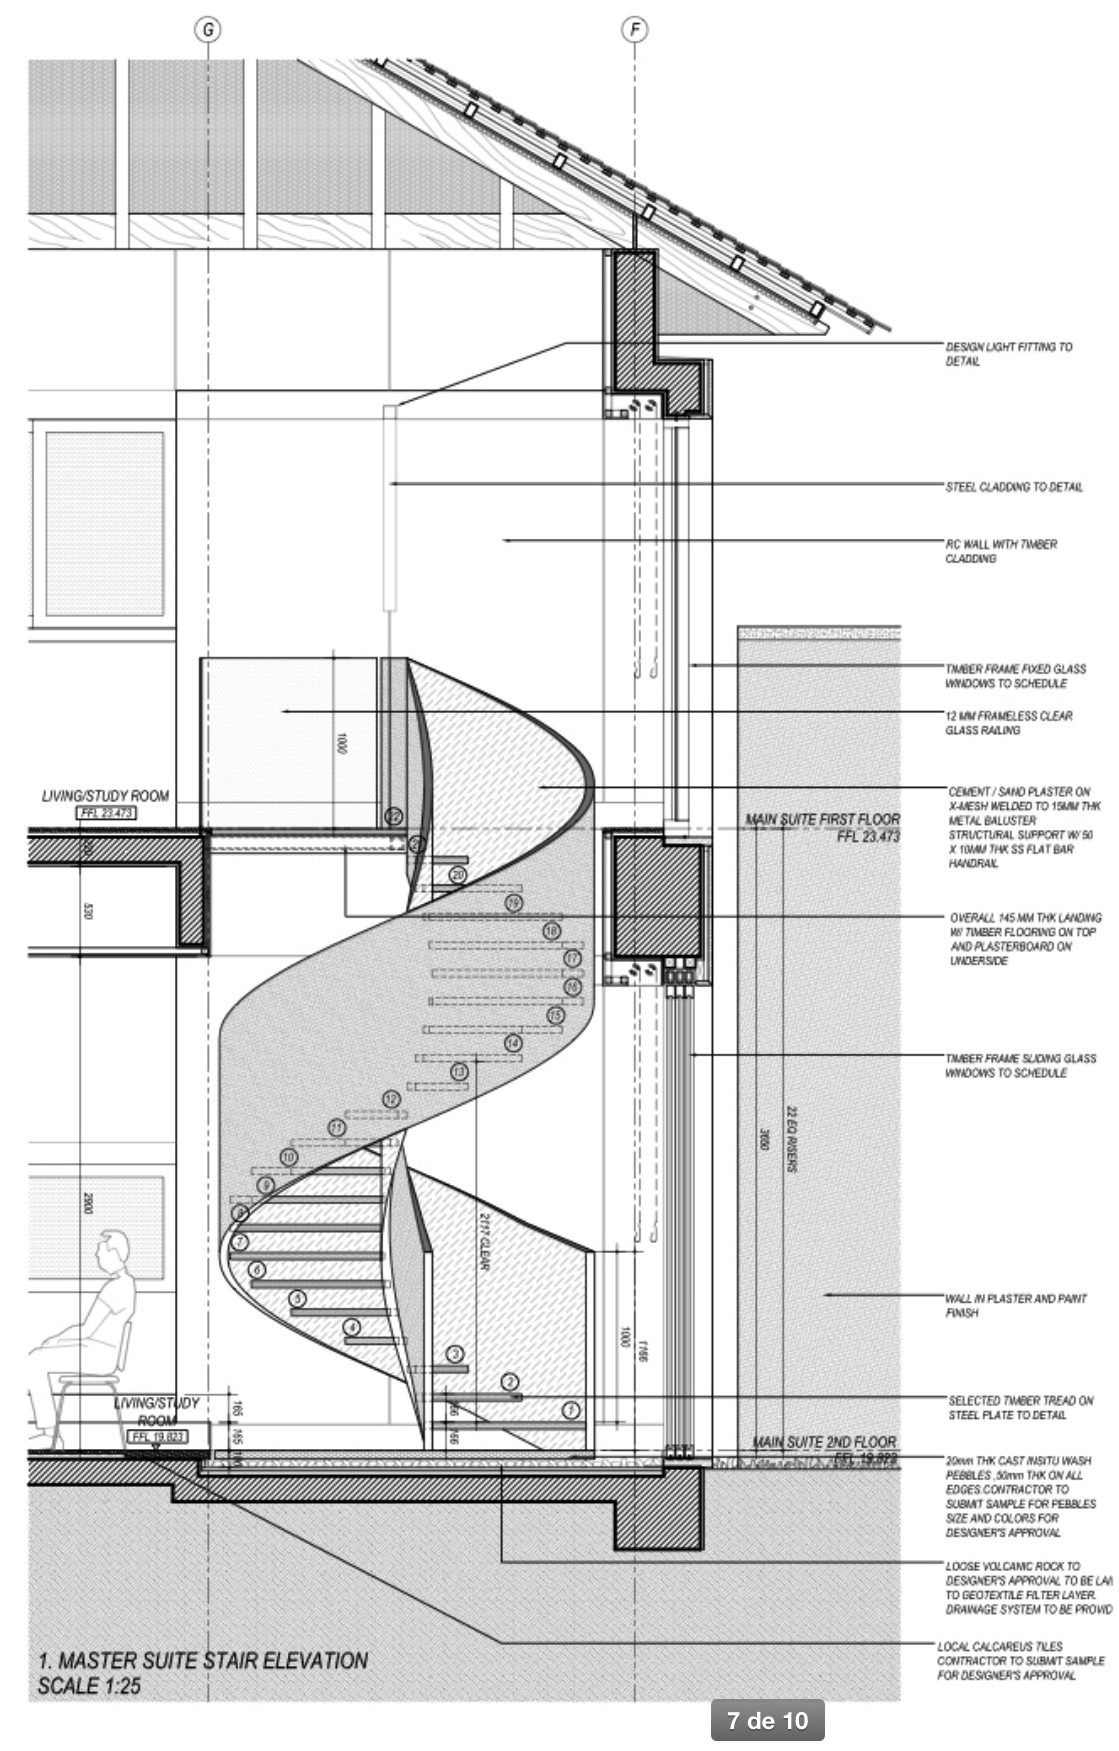 Drawn stairs detail drawing Stair com/originals/e0/d6/5c cache https://s Spiral